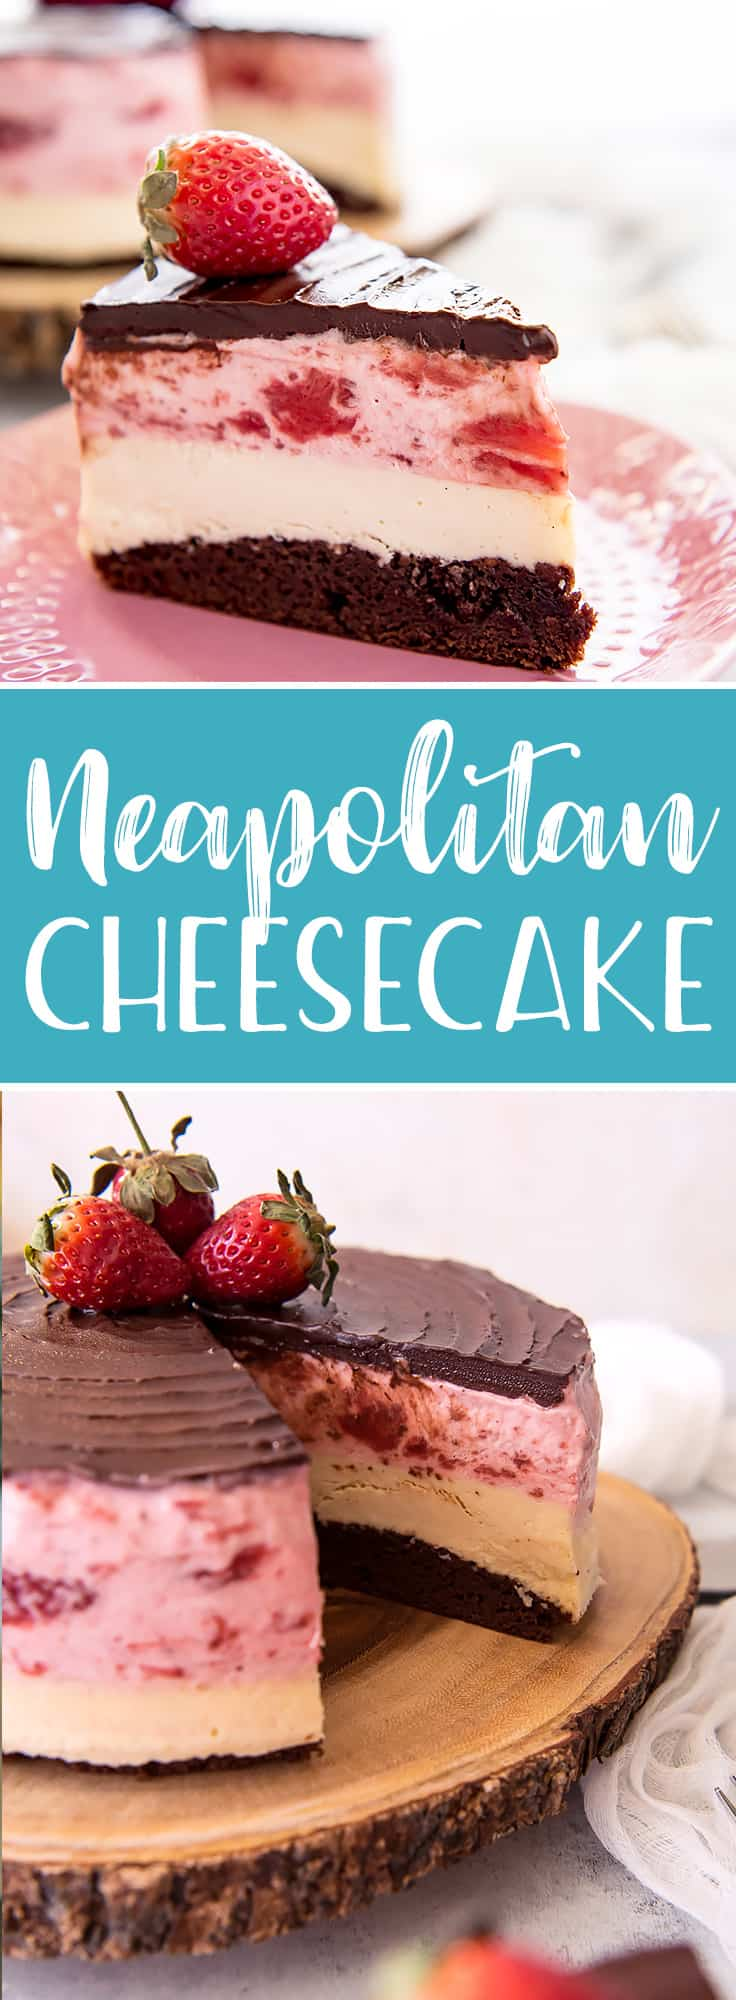 ThisNeapolitan Cheesecake is a triple threat! The classic ice cream flavor combo is perfectly transformed in this three-layer masterpiece of a dessert - chocolate brownie, creamy vanilla cheesecake, and fluffy strawberry cream topping, topped with a crown of chocolate ganache.